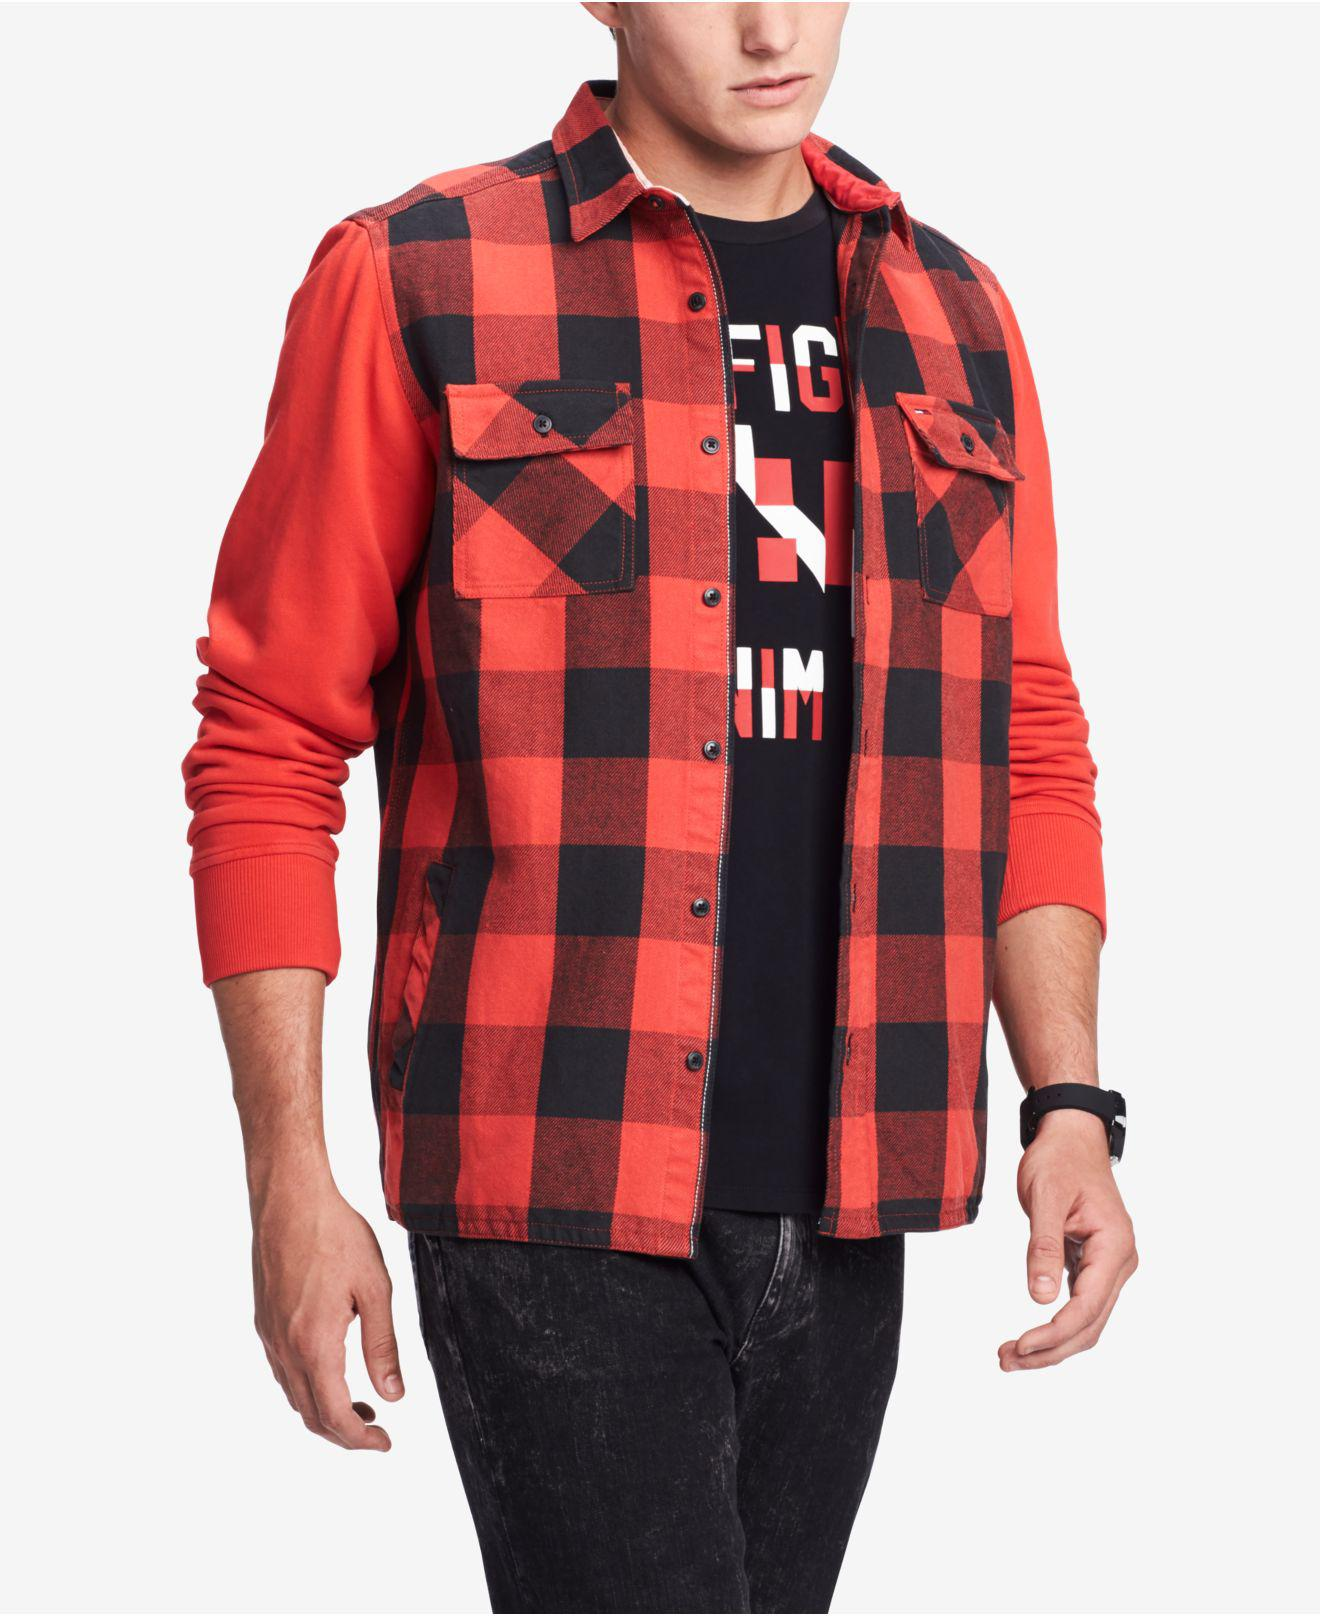 18e2ce59d405 Lyst - Tommy Hilfiger Bowery Classic-fit Buffalo Plaid Shirt ...